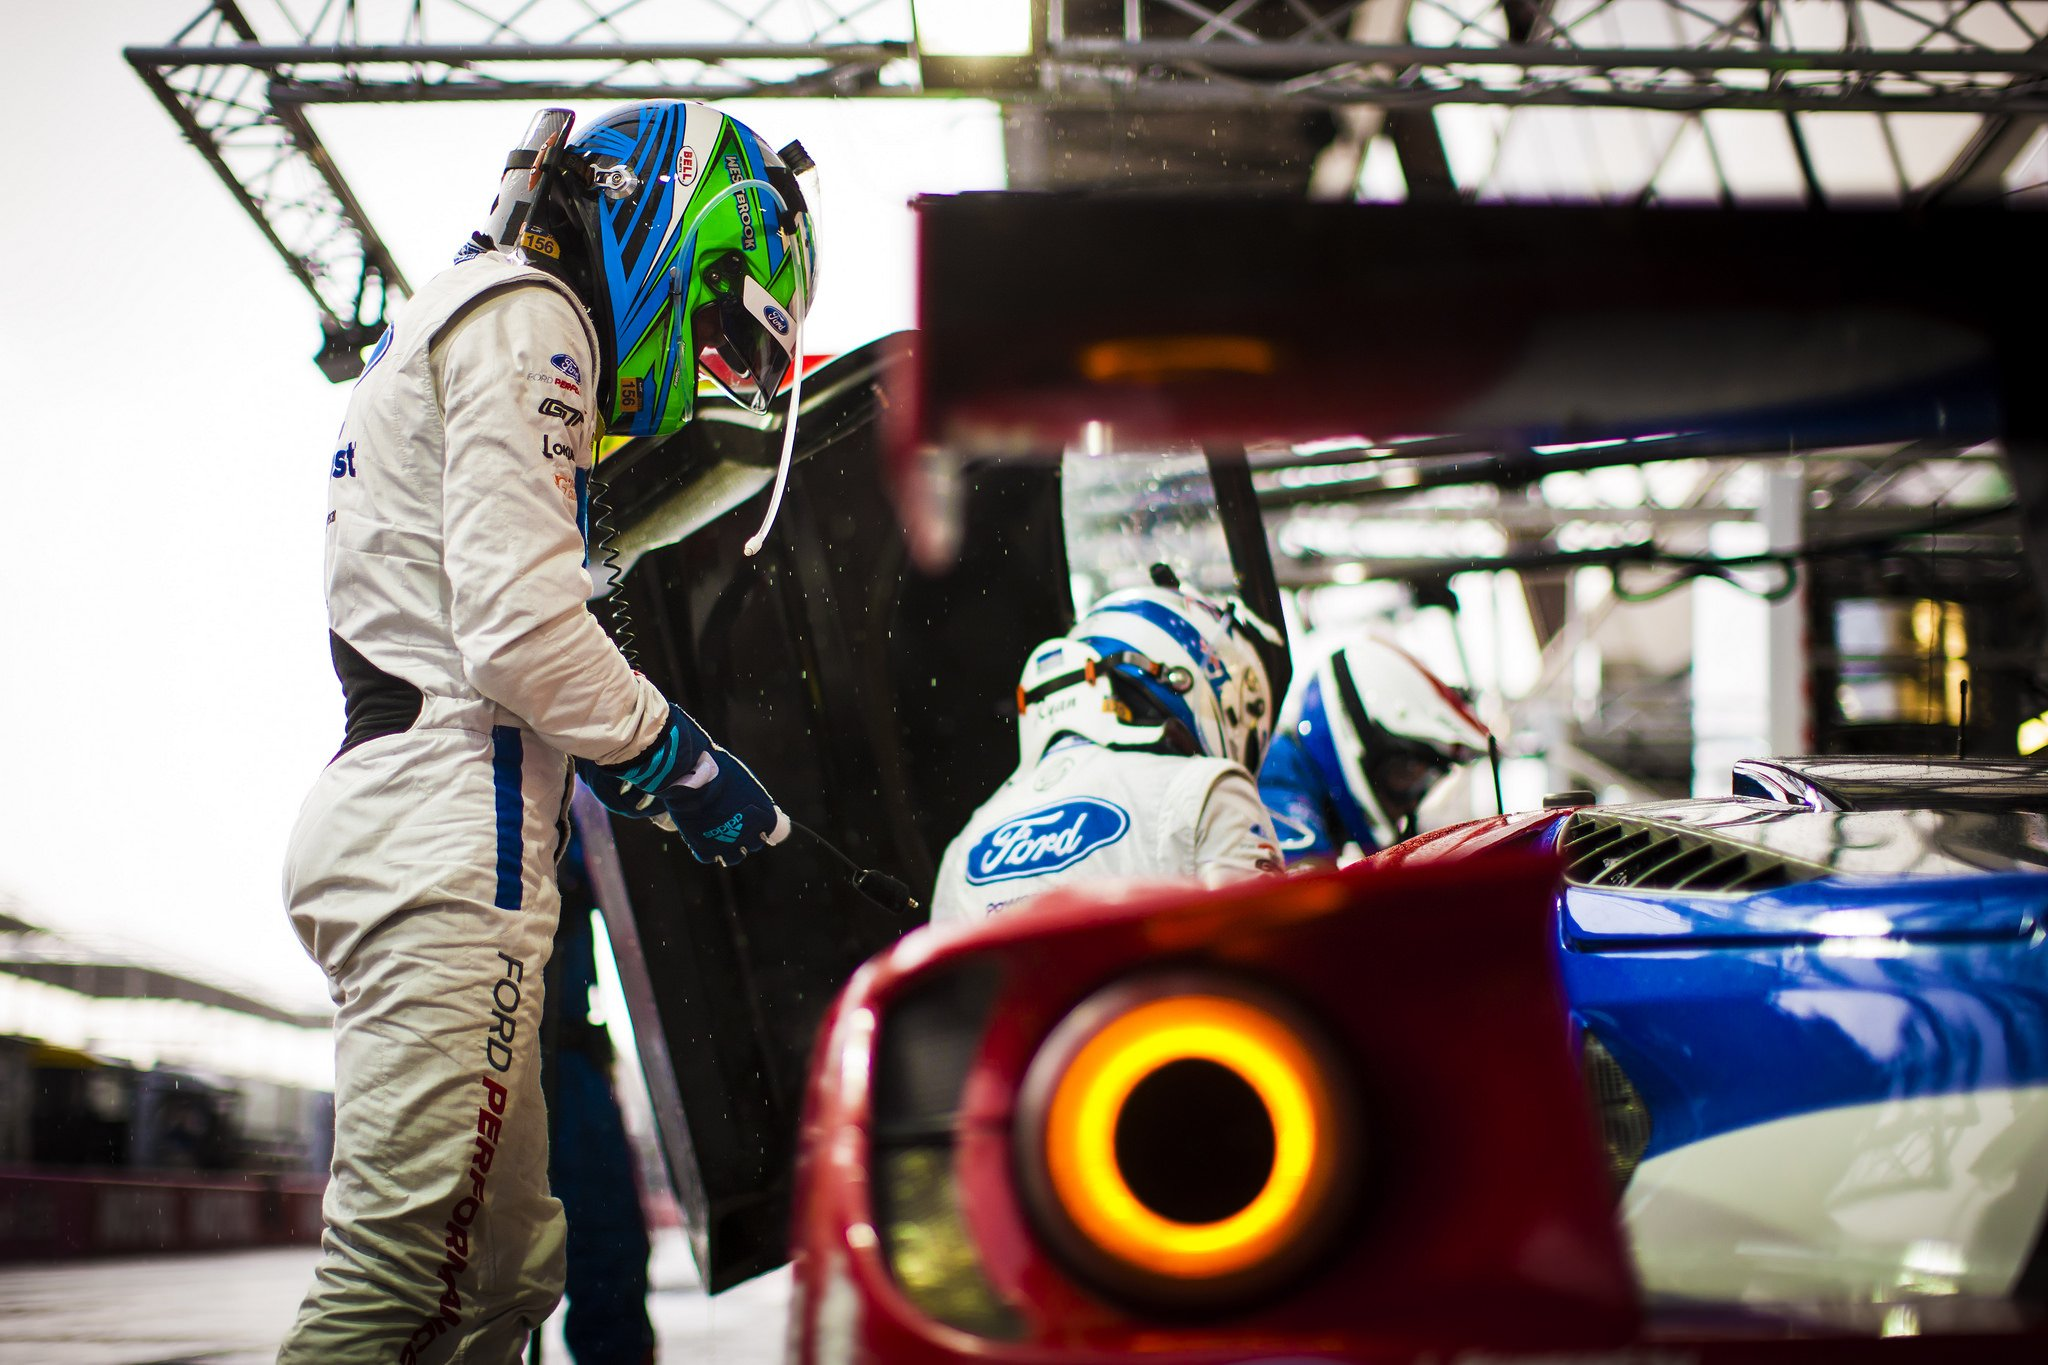 How to Watch the 24 Hours of Le Mans This Weekend